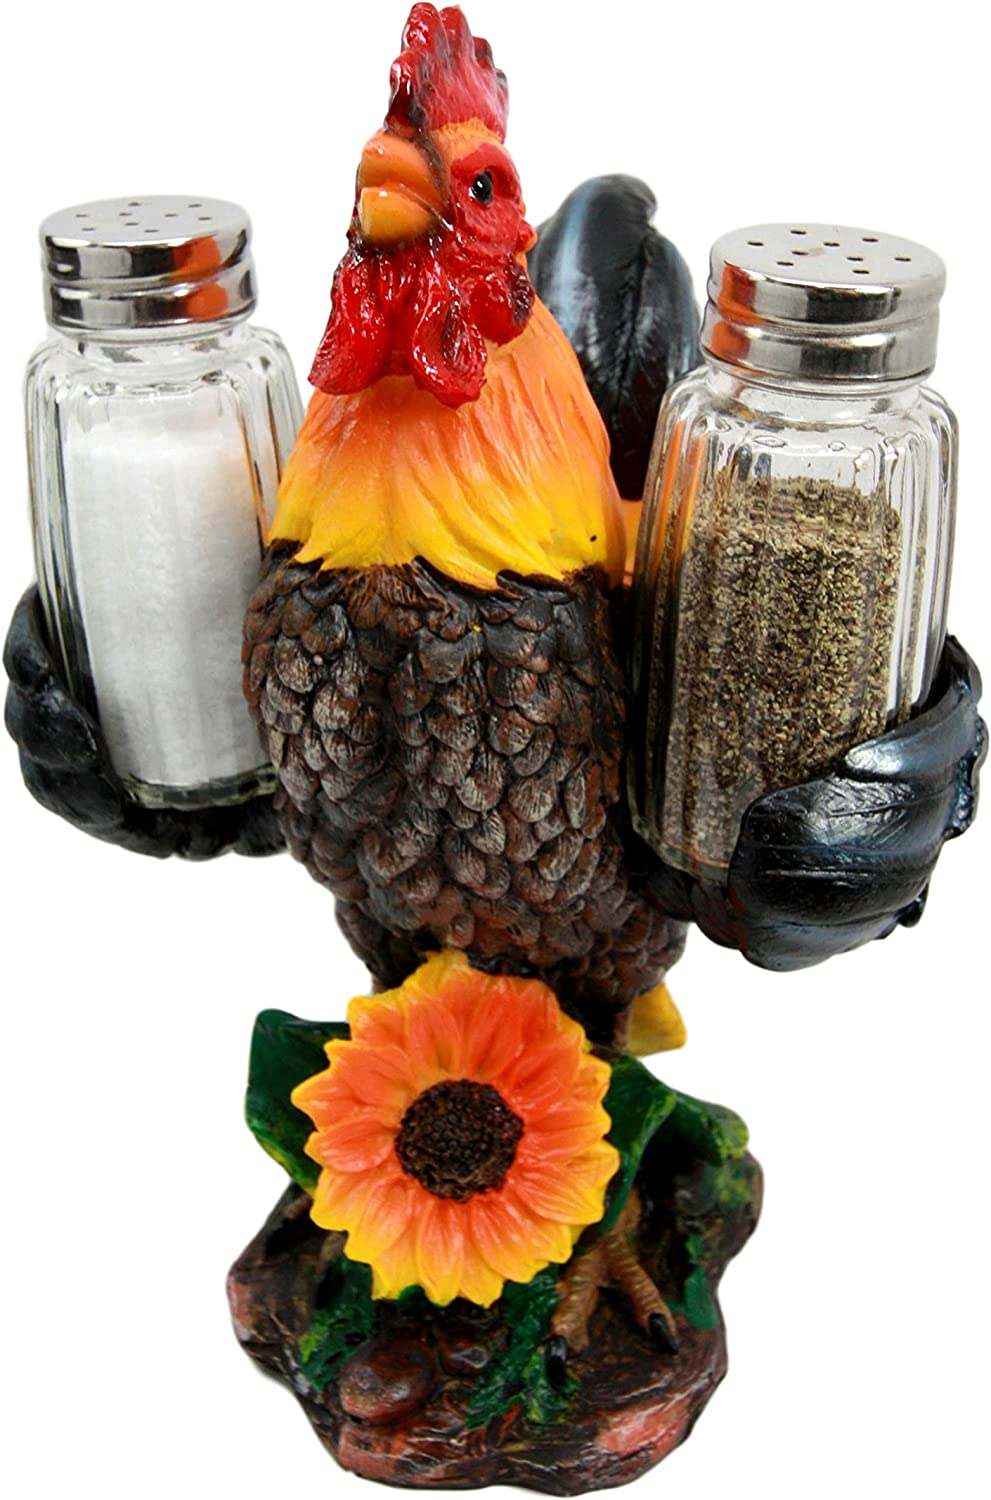 Ebros Country Farm Barnyard Alpha Rooster Salt and Pepper Shakers Holder Figurine Set Sunflower Poultry Chicken Seasonings Decor (1)